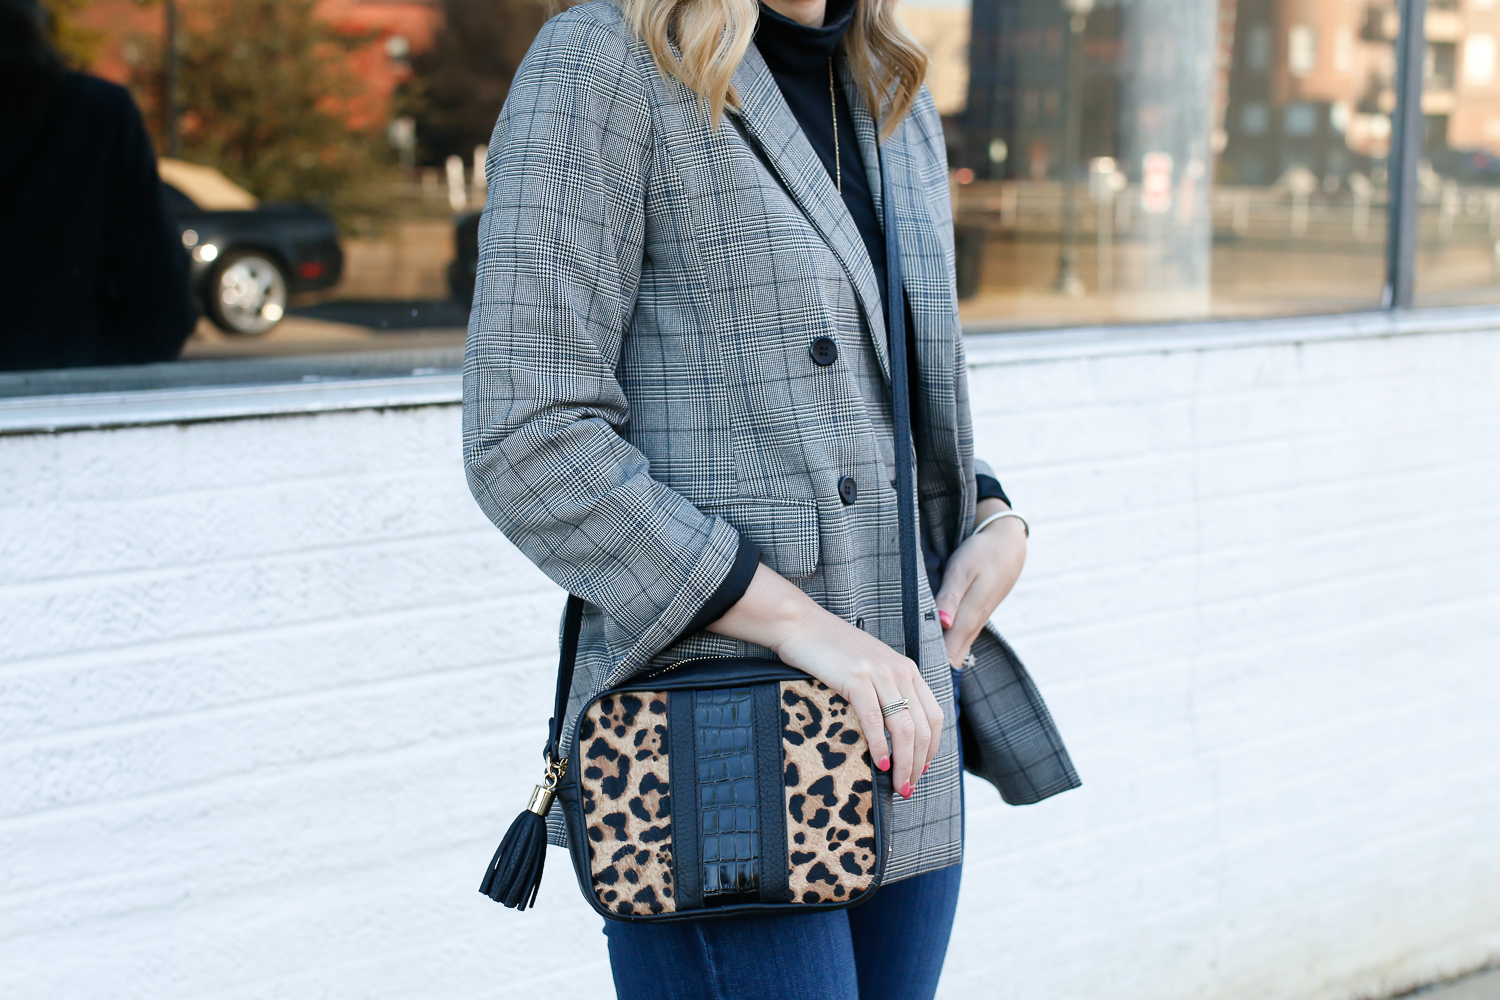 Gigi New York leopard bag